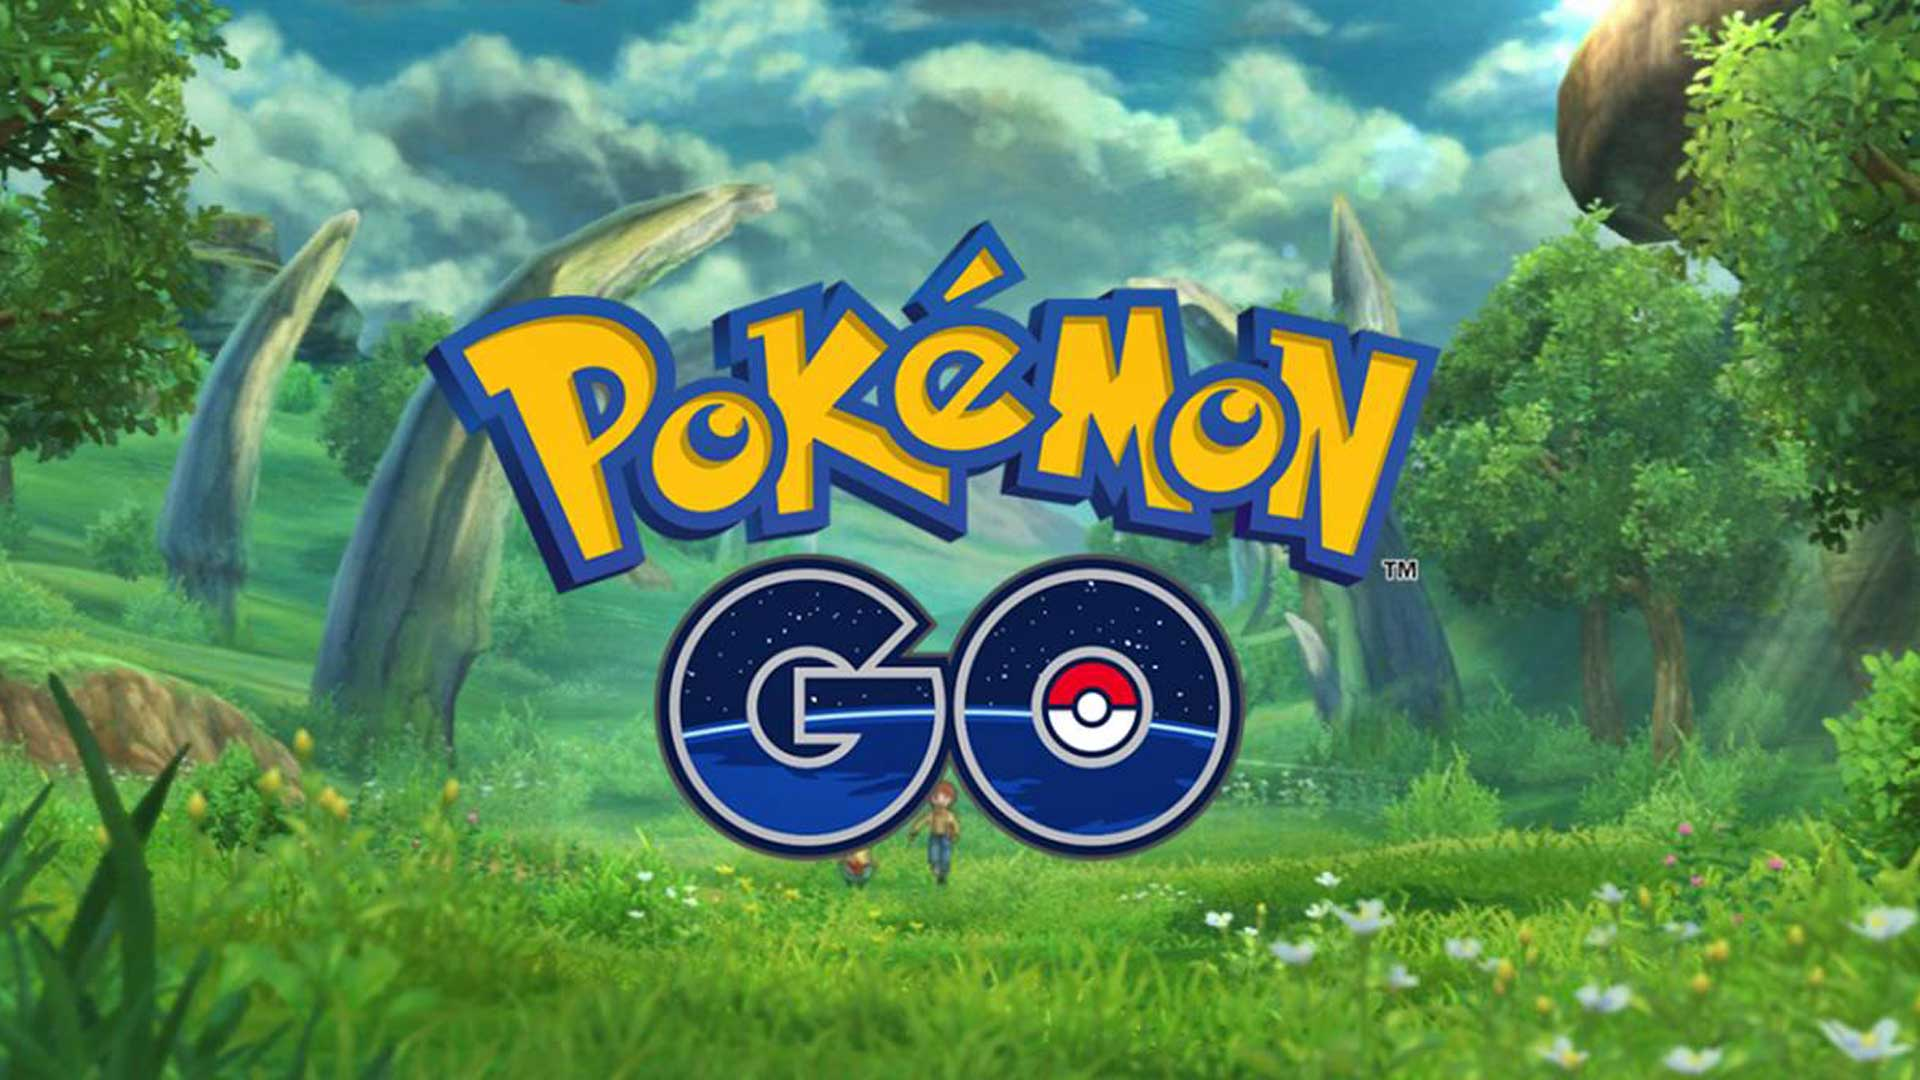 Download Pokemon Go Wallpaper To Your iPhone For Free